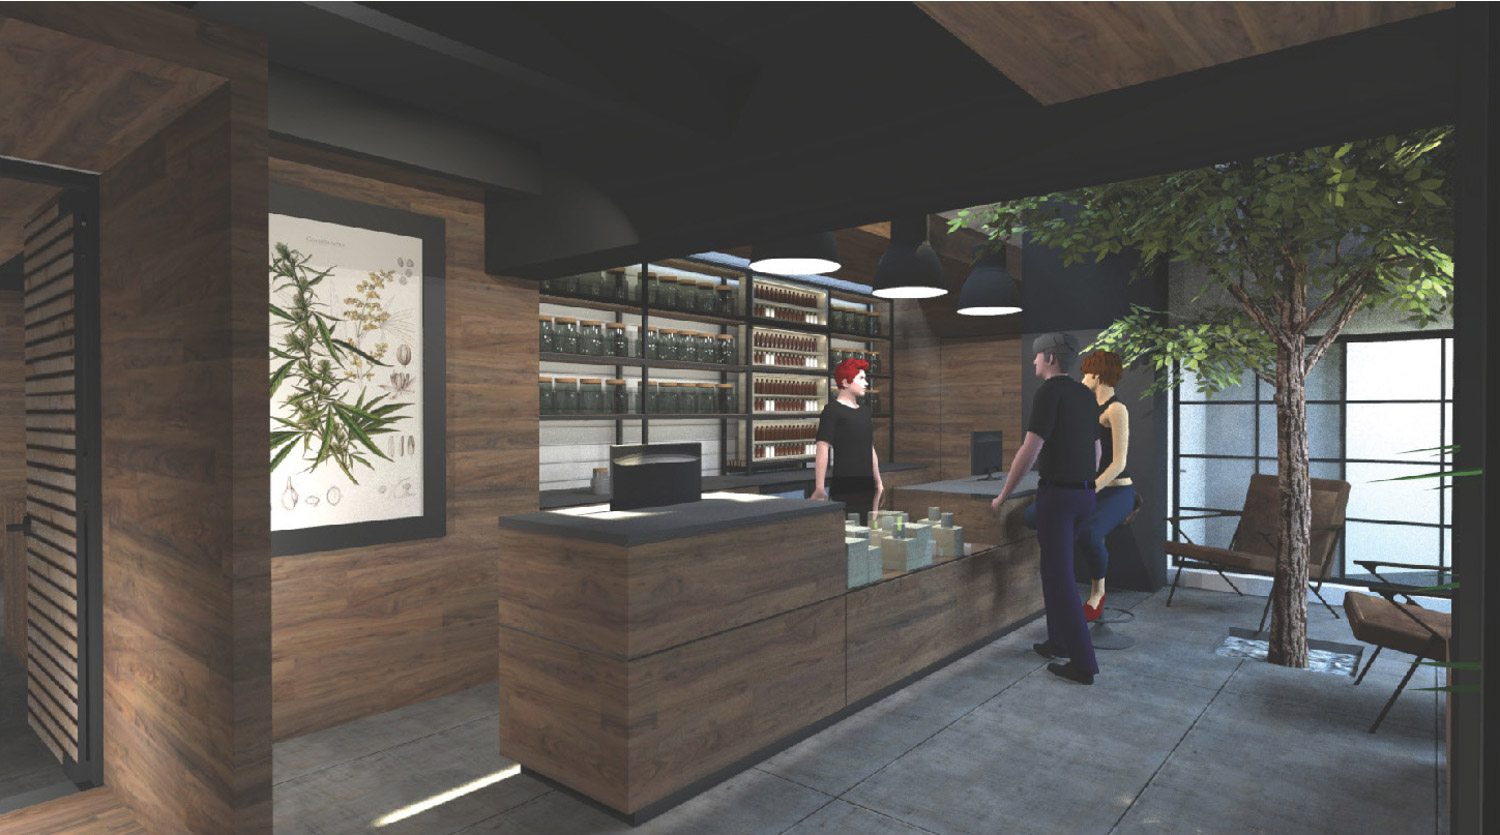 Modern cannabis dispensary design and retail experience. Customers interact with immersive architecture, design, and art.